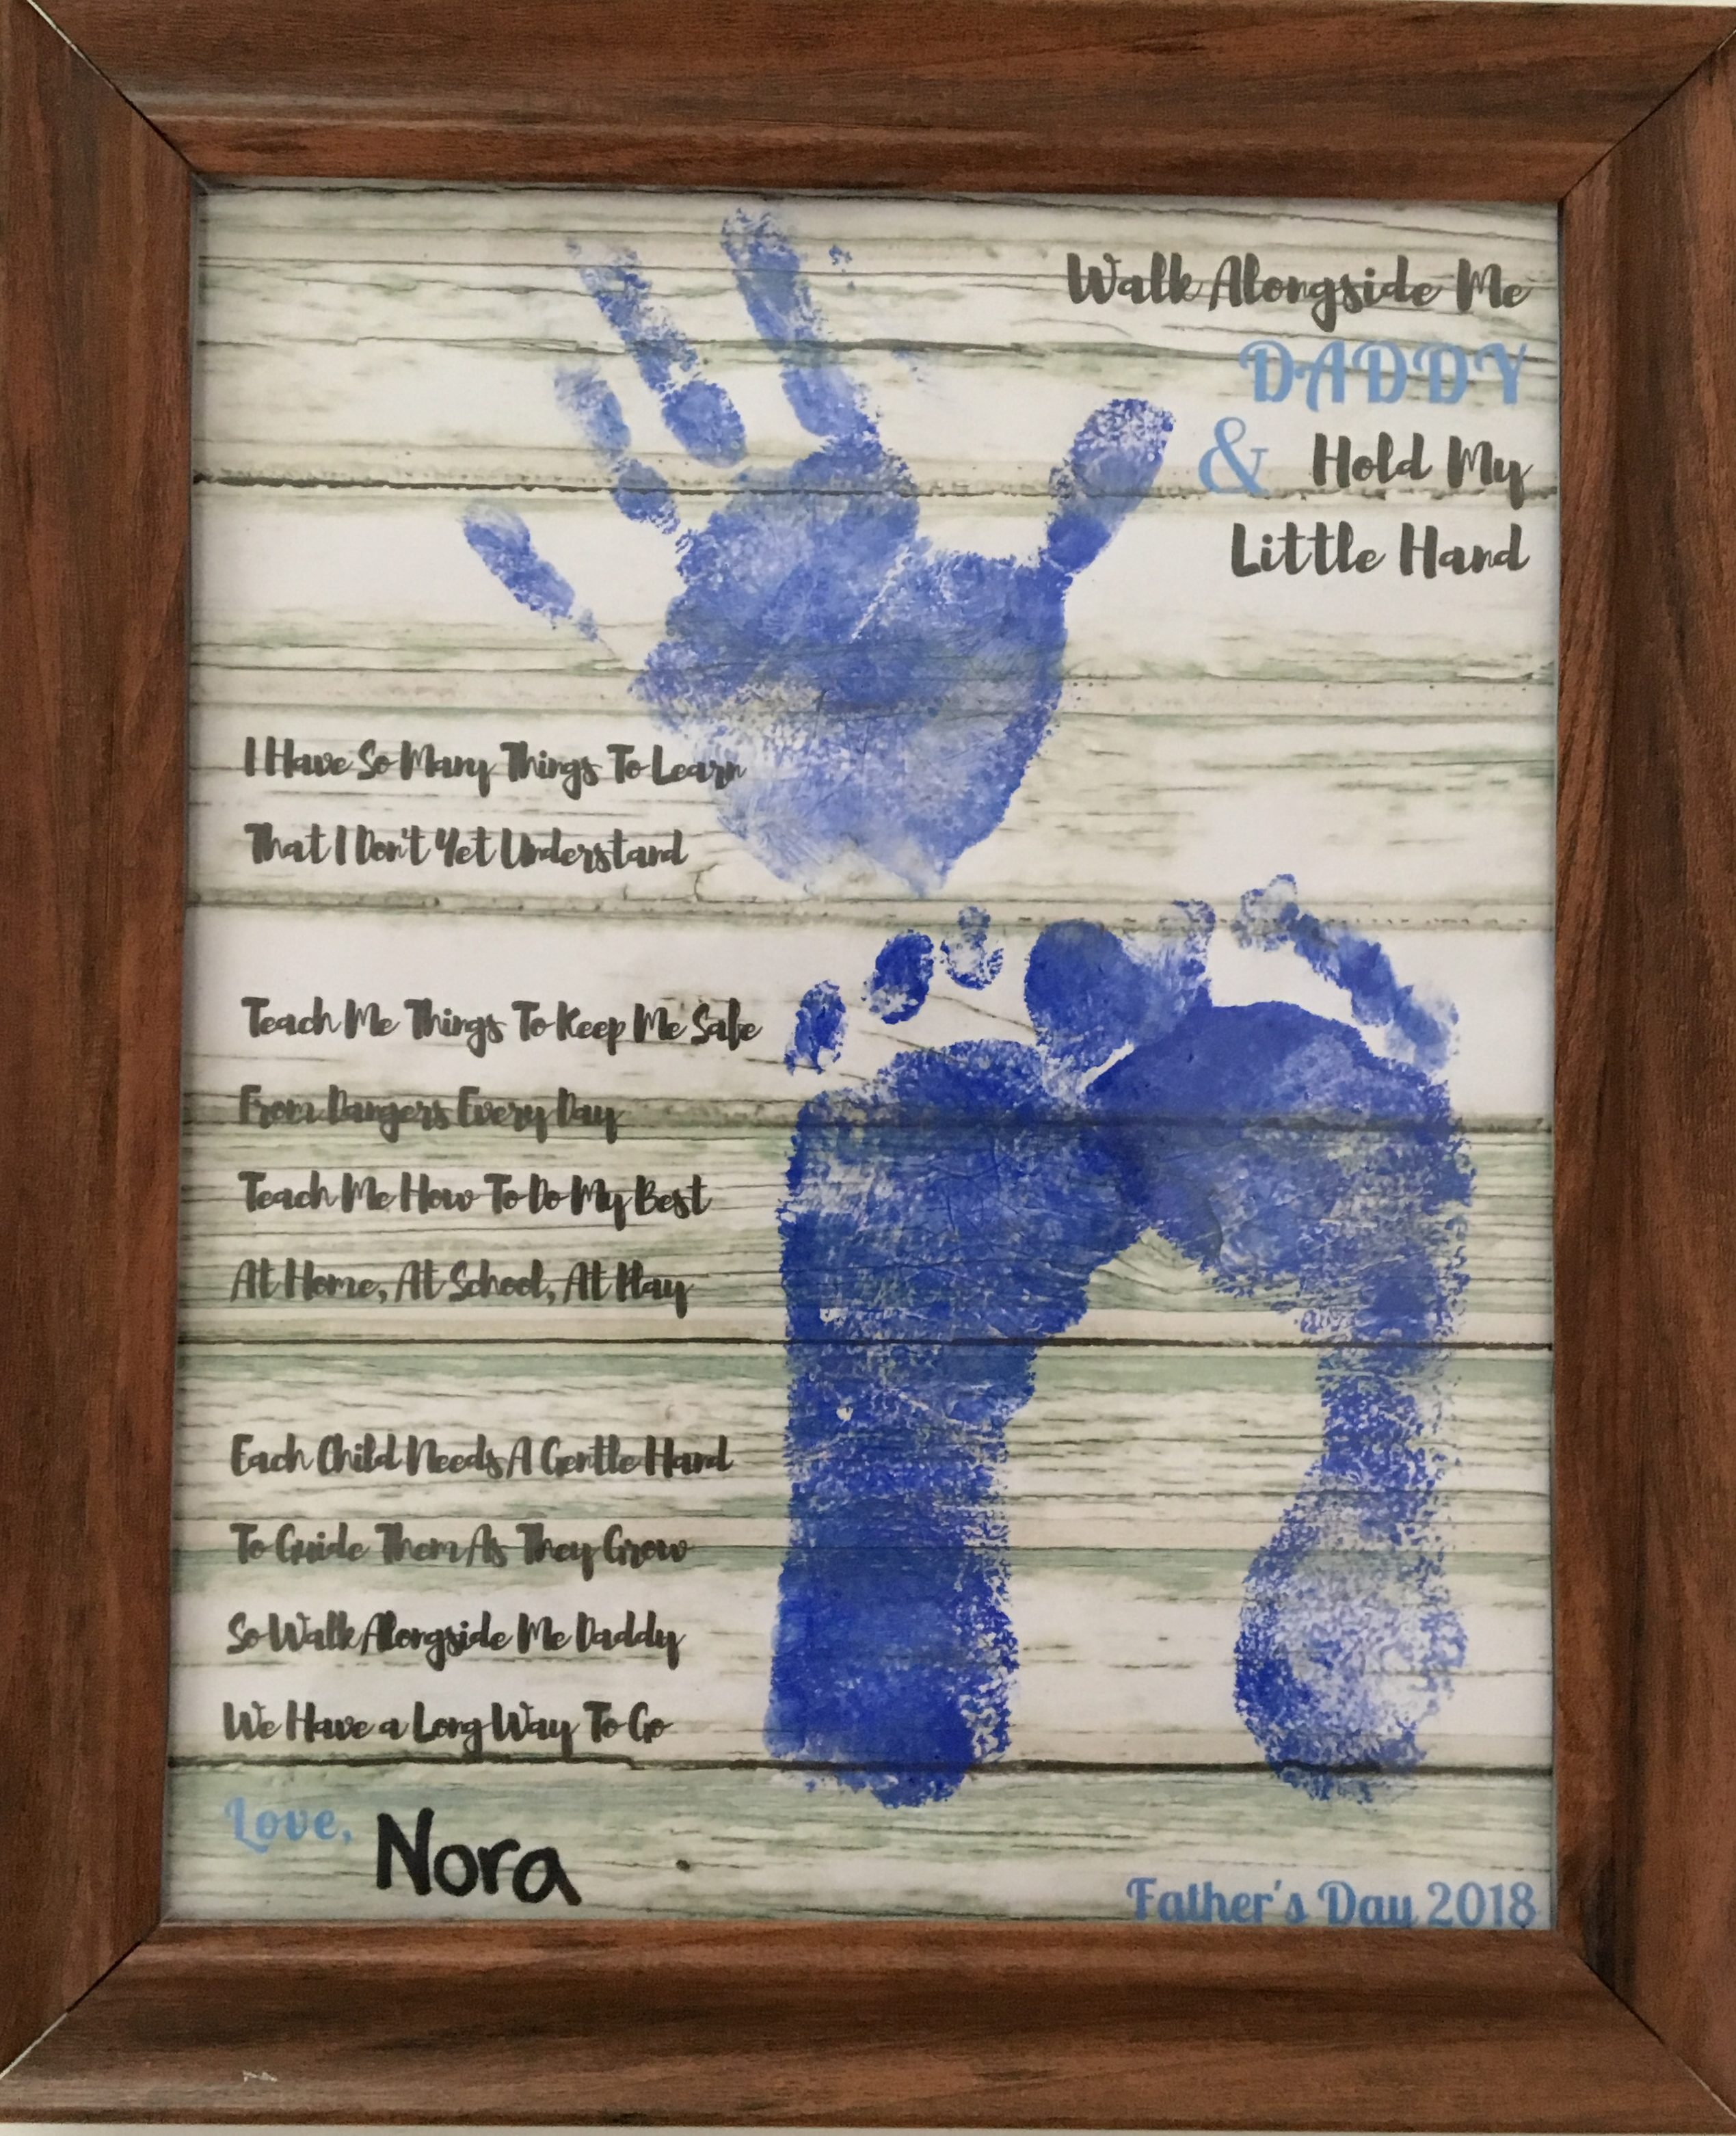 image about Walk With Me Daddy Poem Printable titled Wander Along with Me Daddy Keepsake